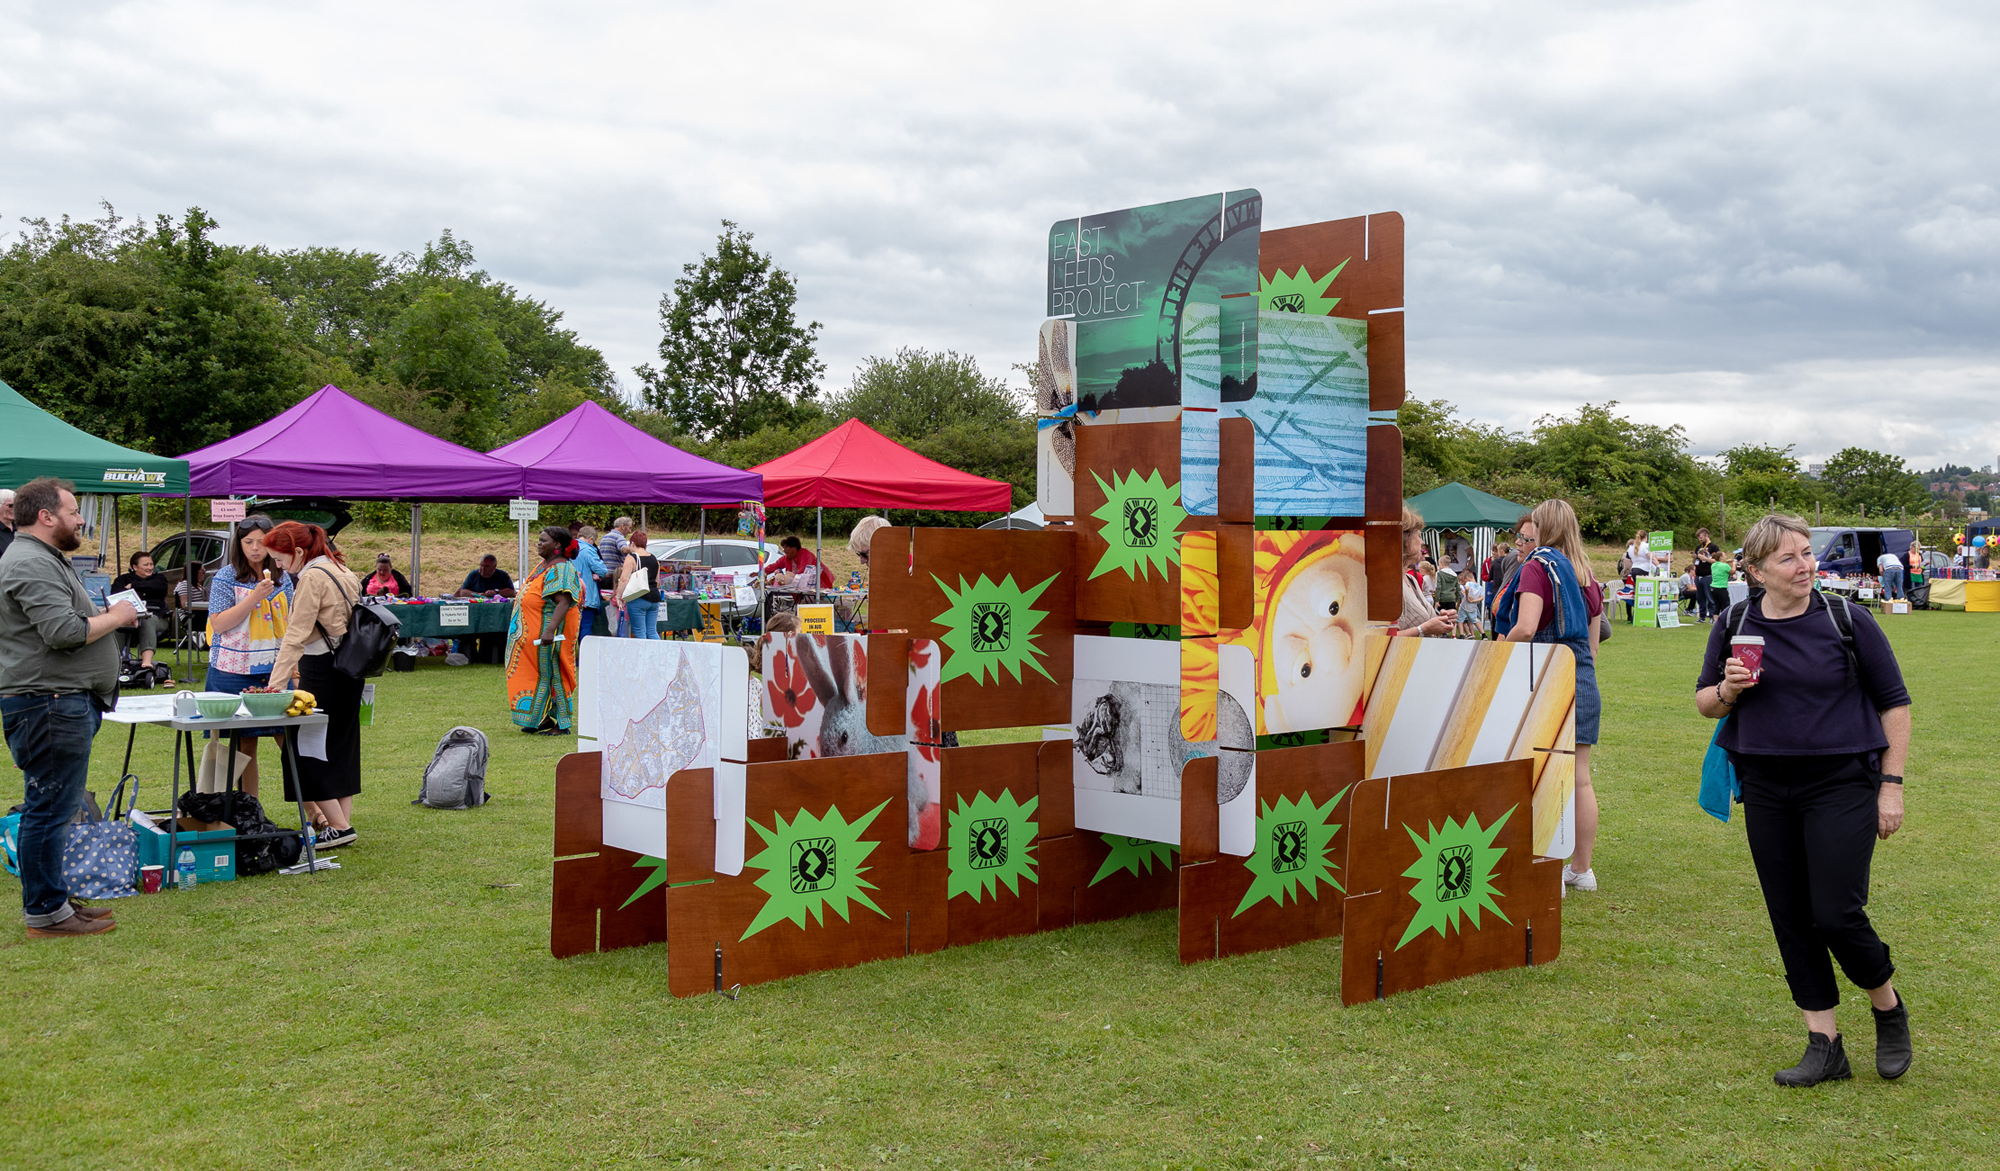 What Makes Gipton? by Andy Abbott at Gipton Gala 2019